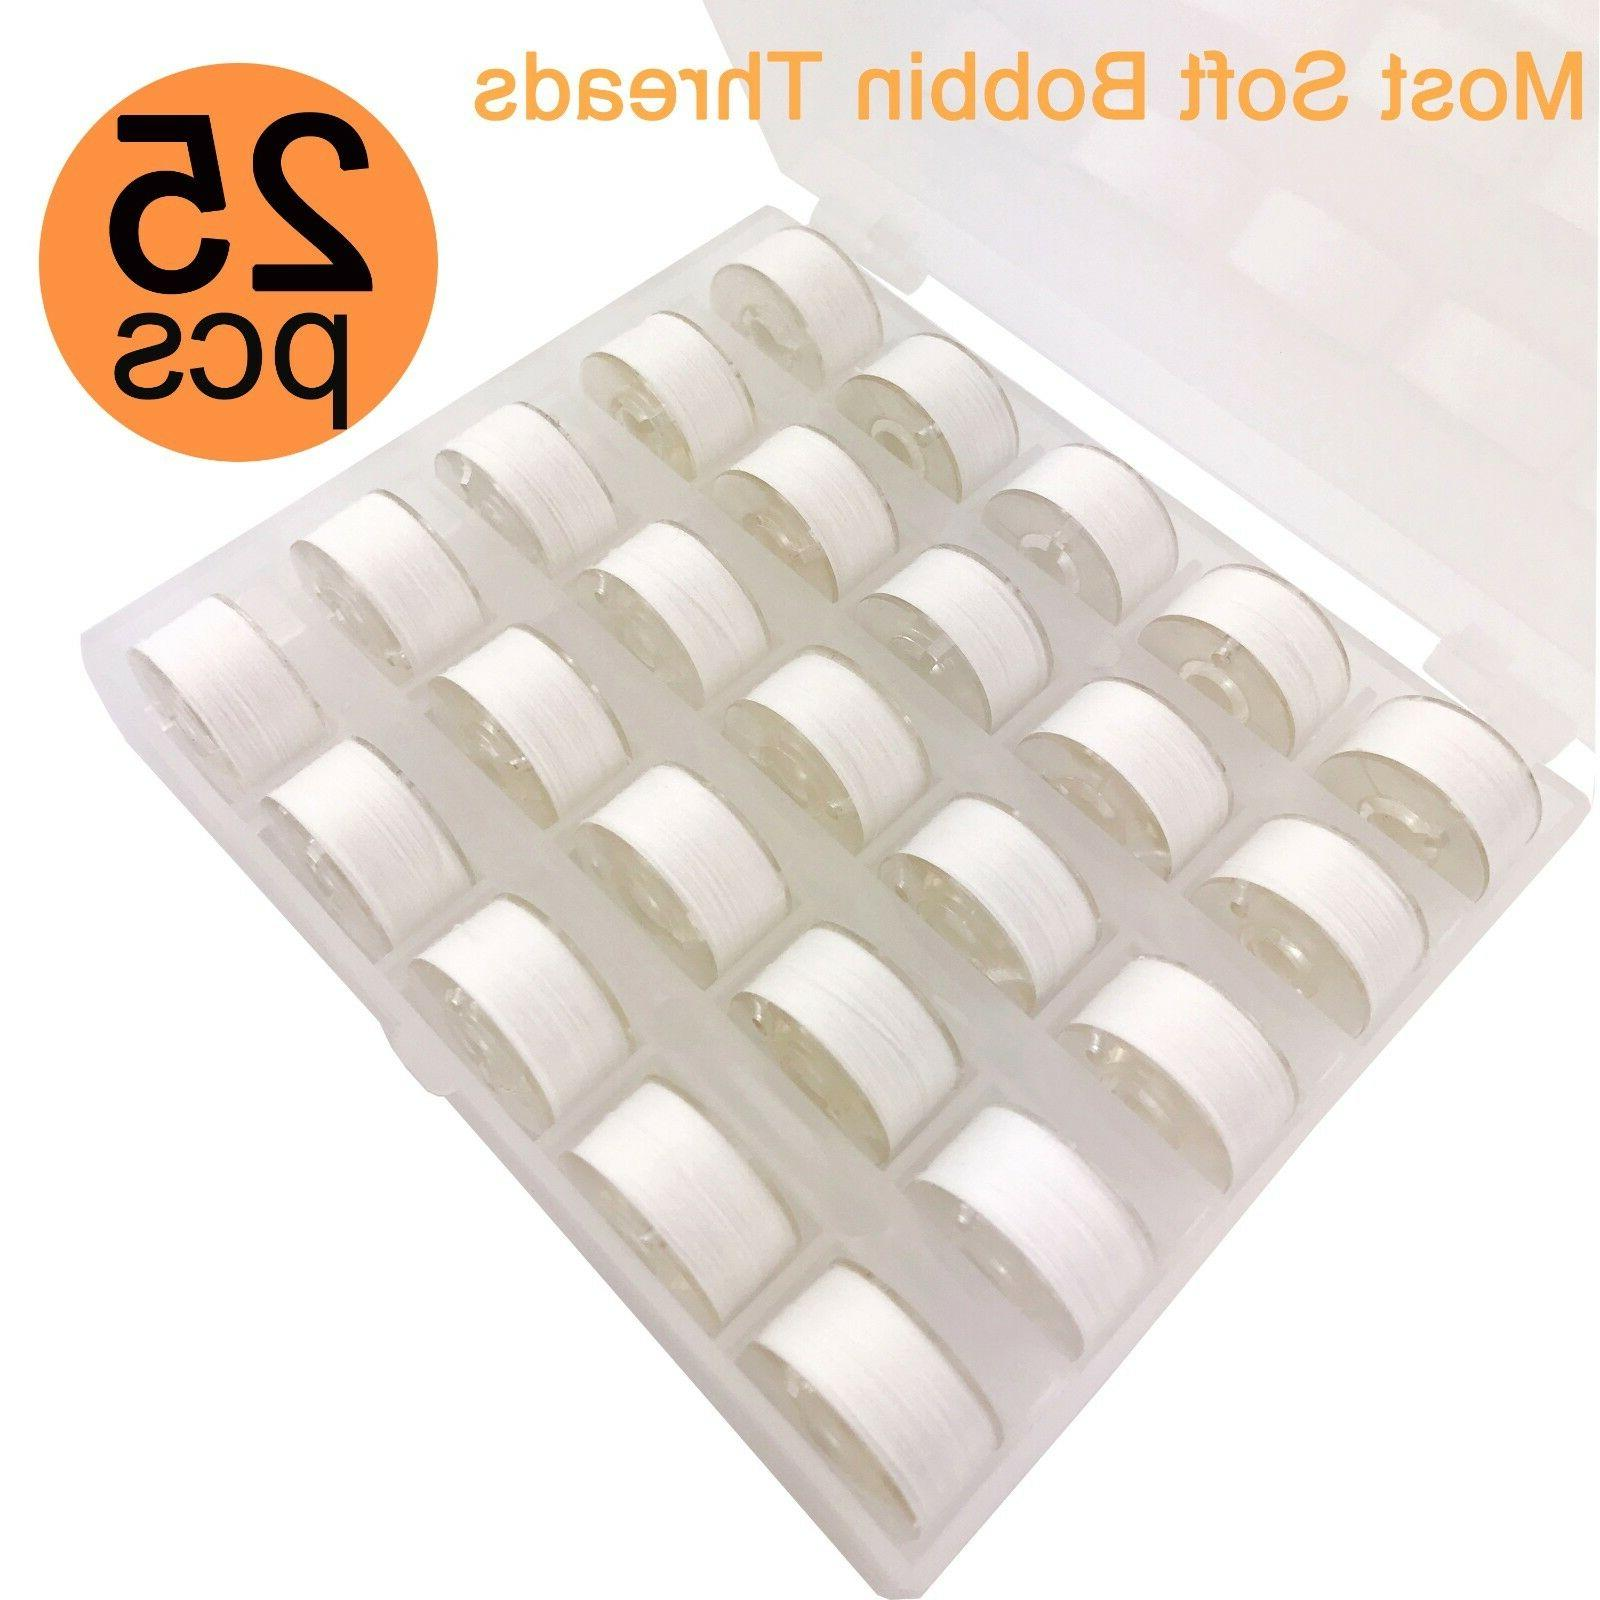 25pcs Bobbin For Embroidery and Machines